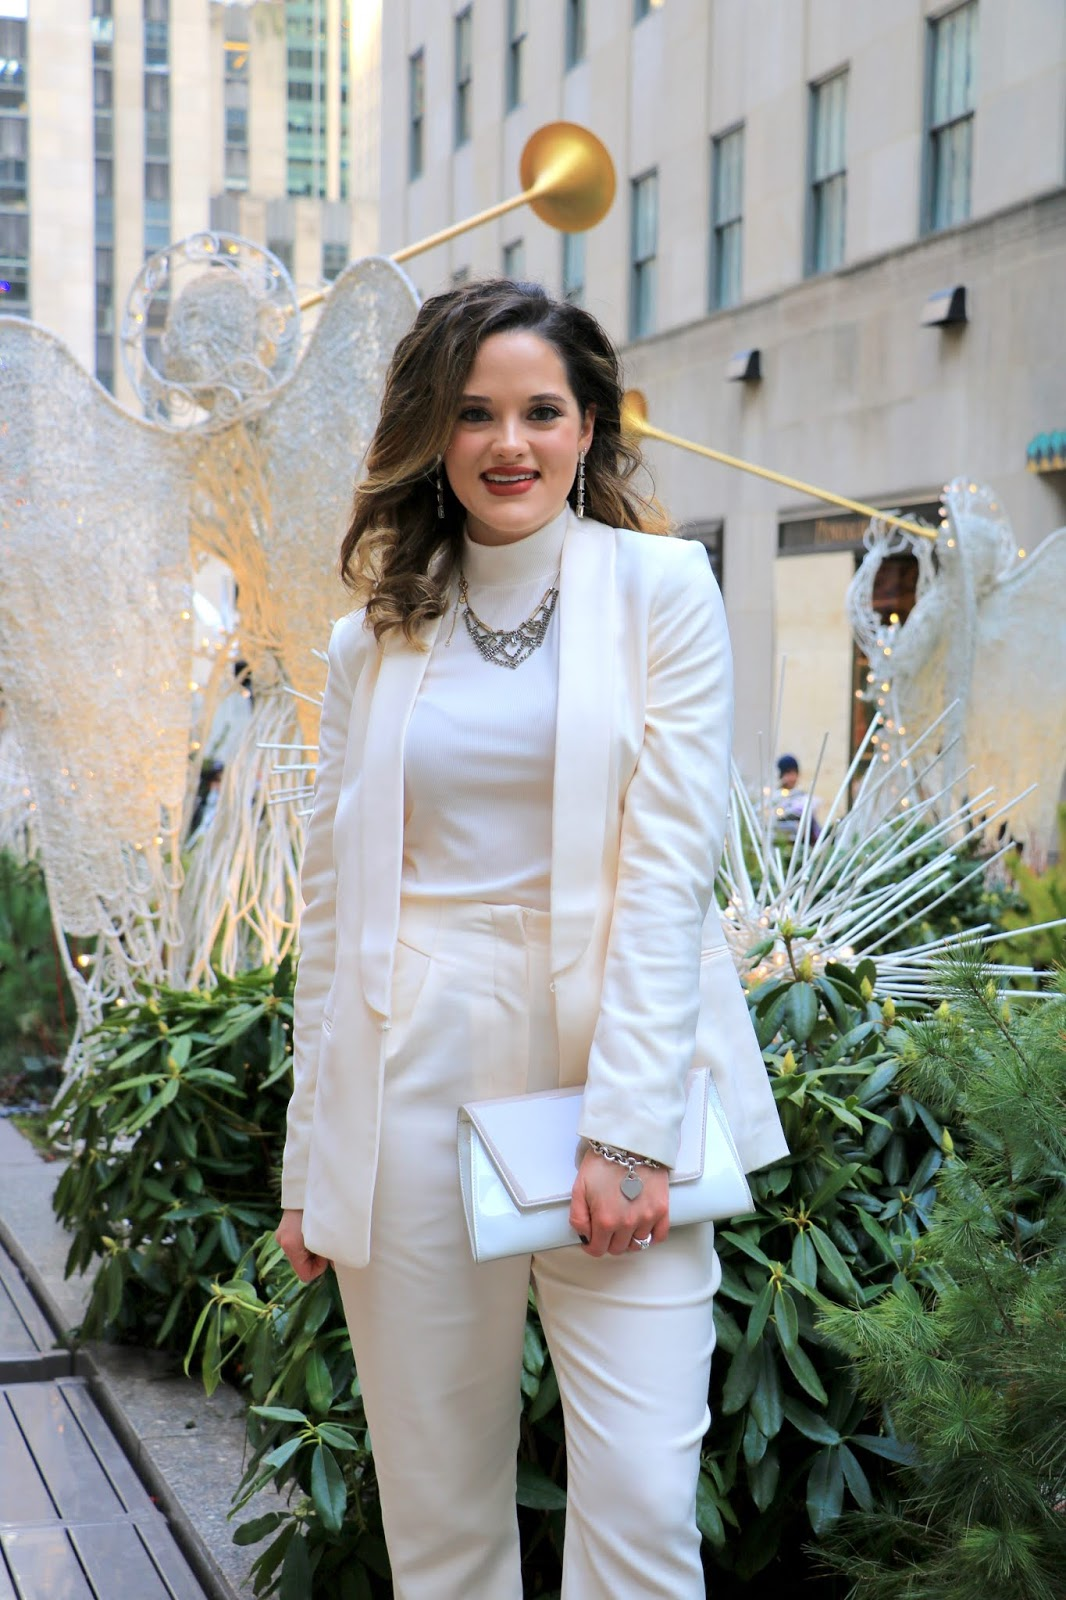 Nyc fashion blogger Kathleen Harper wearing a power suit for the holidays.